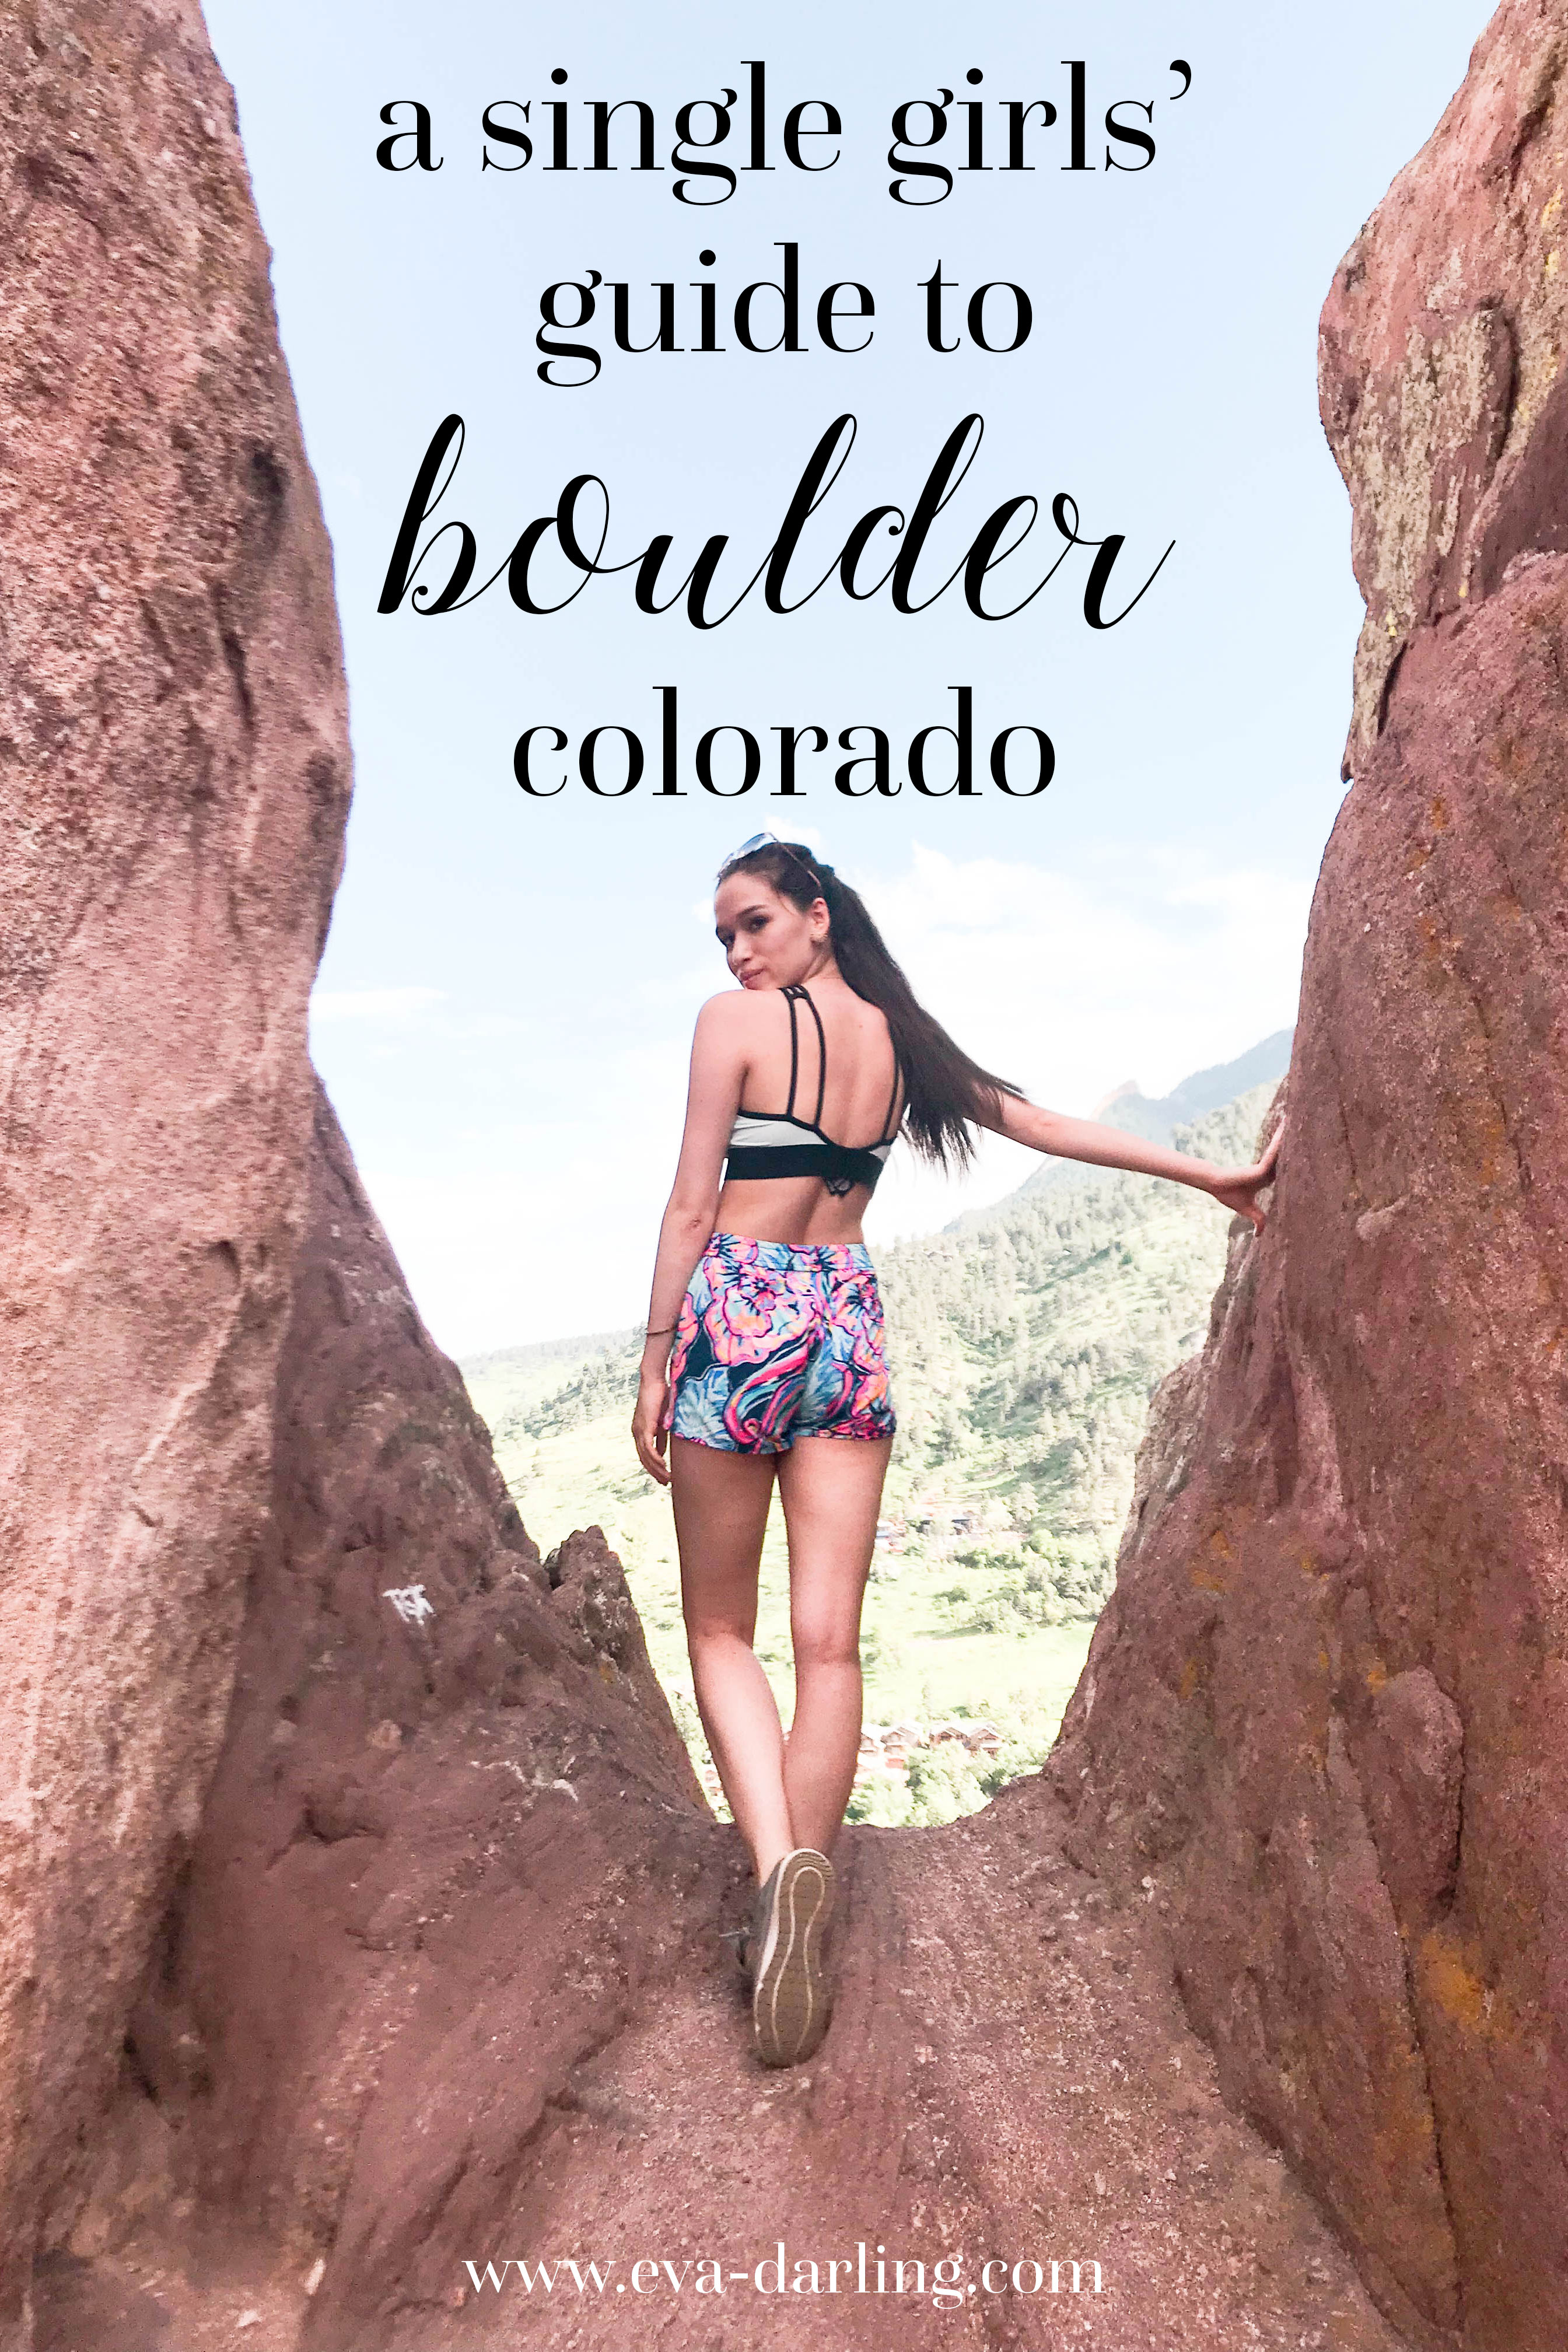 eva phan eva darling NYC travel blog blogger red rocks trail boulder colorado lilly pulitzer run around shorts blue boho bateau vs pink sports bra sperry topside 7 seas seven brunette long hair ponytail brown hiking shoes tennis water shoe a single girls' guide victorias secret